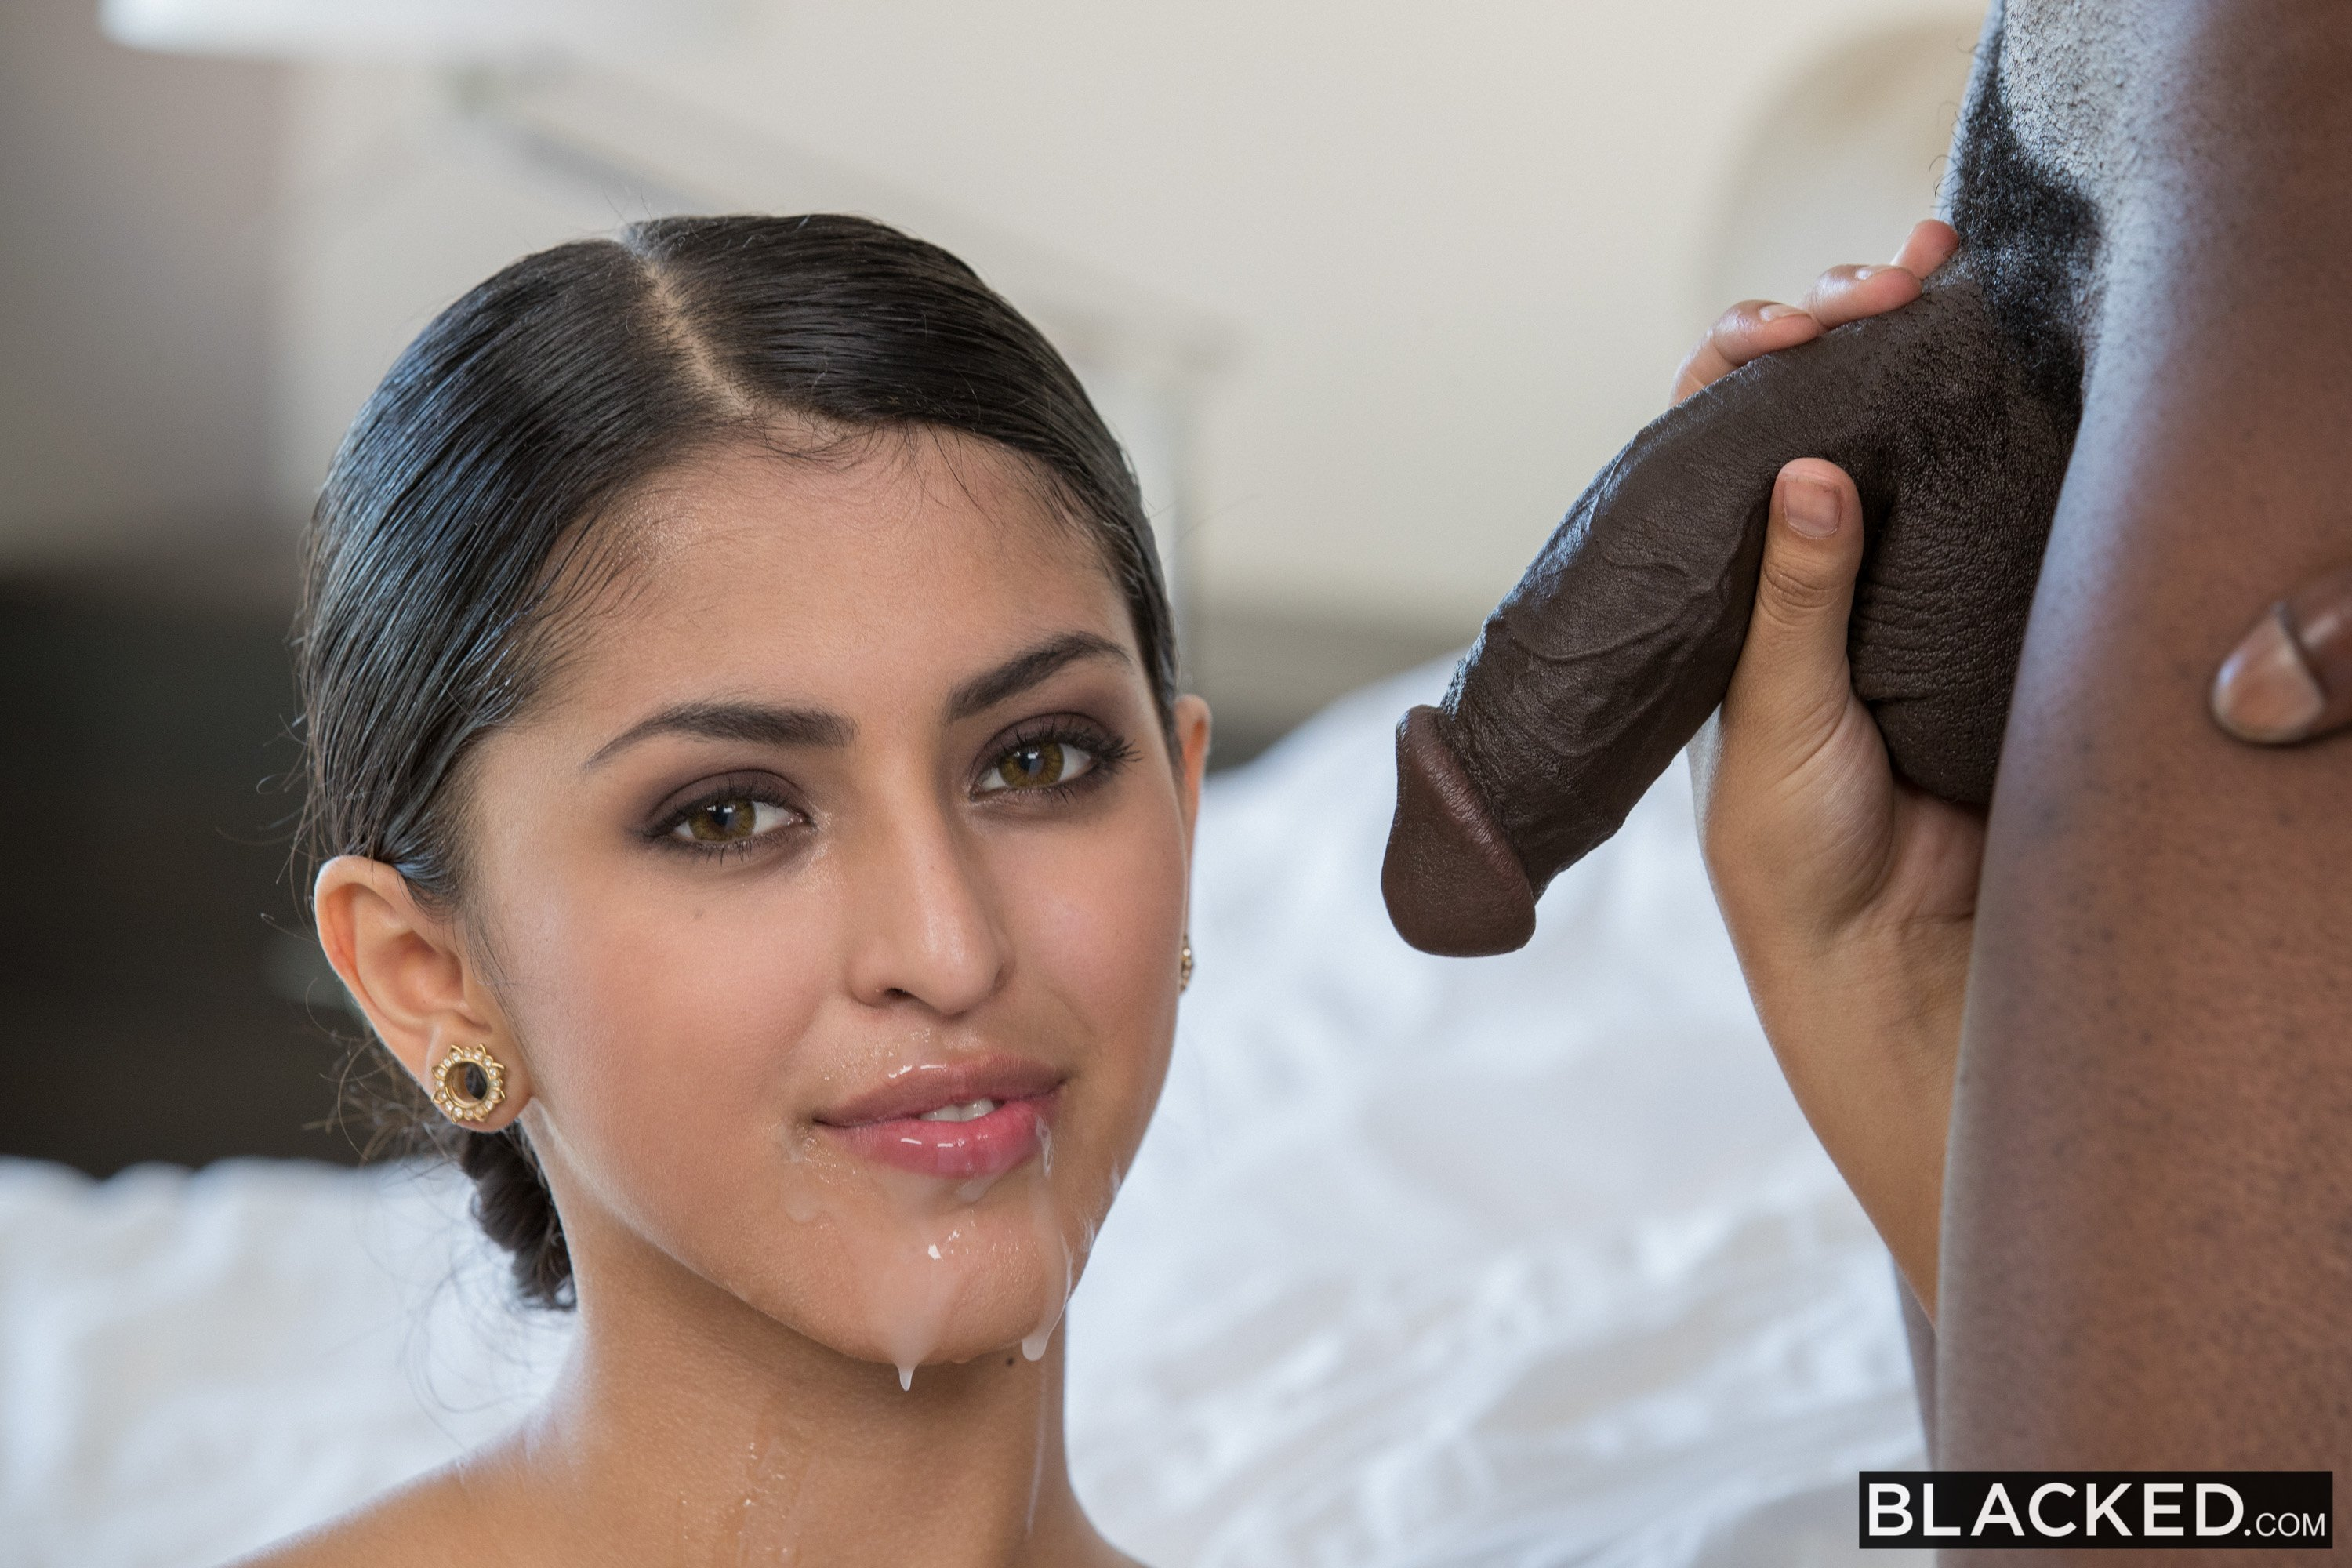 madelyn marie interracial add photo